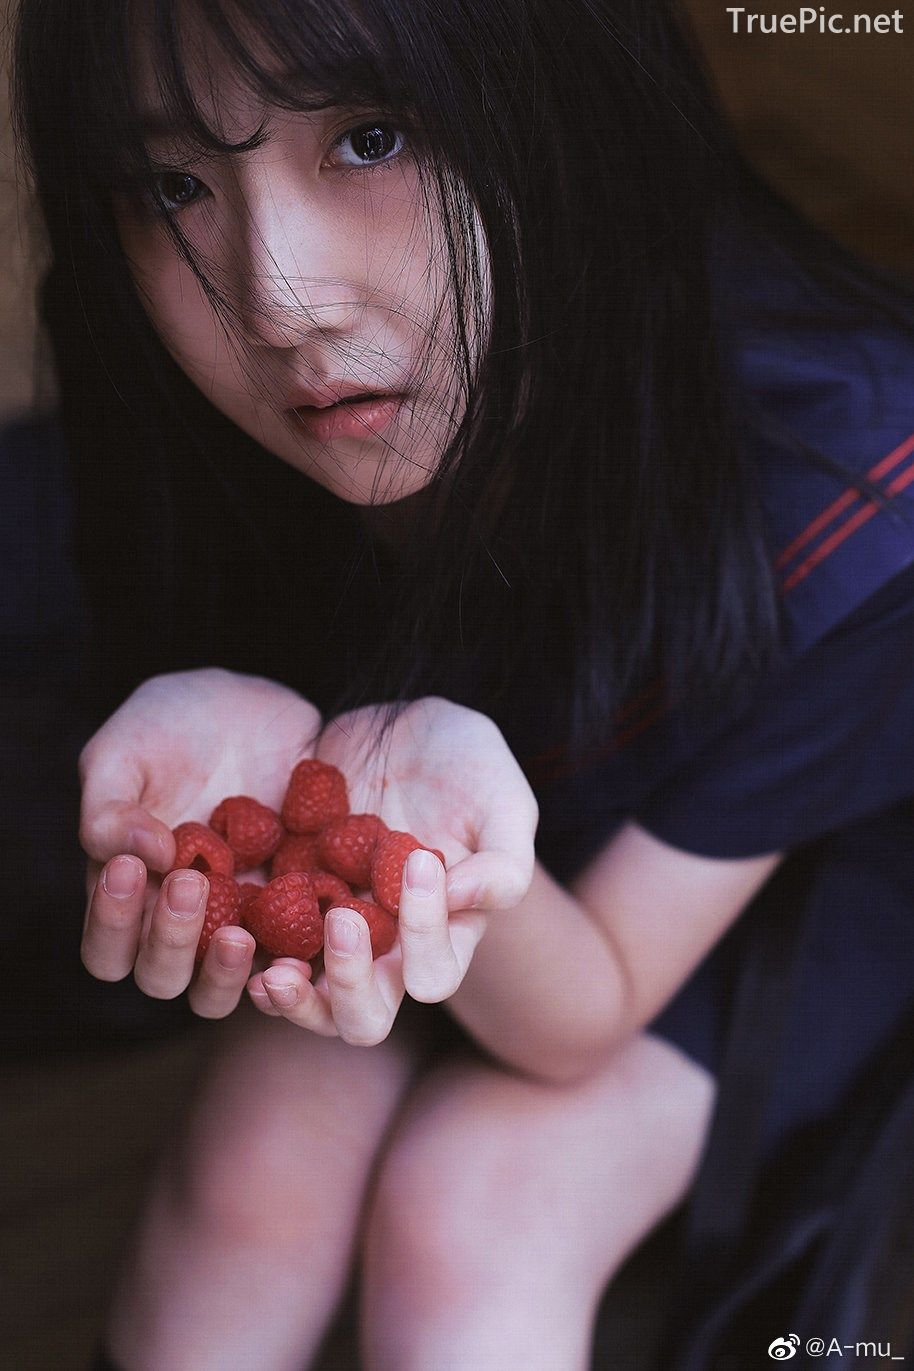 Chinese sexy model - Sweet Raspberry girl - Photos by A-mu - Picture 4